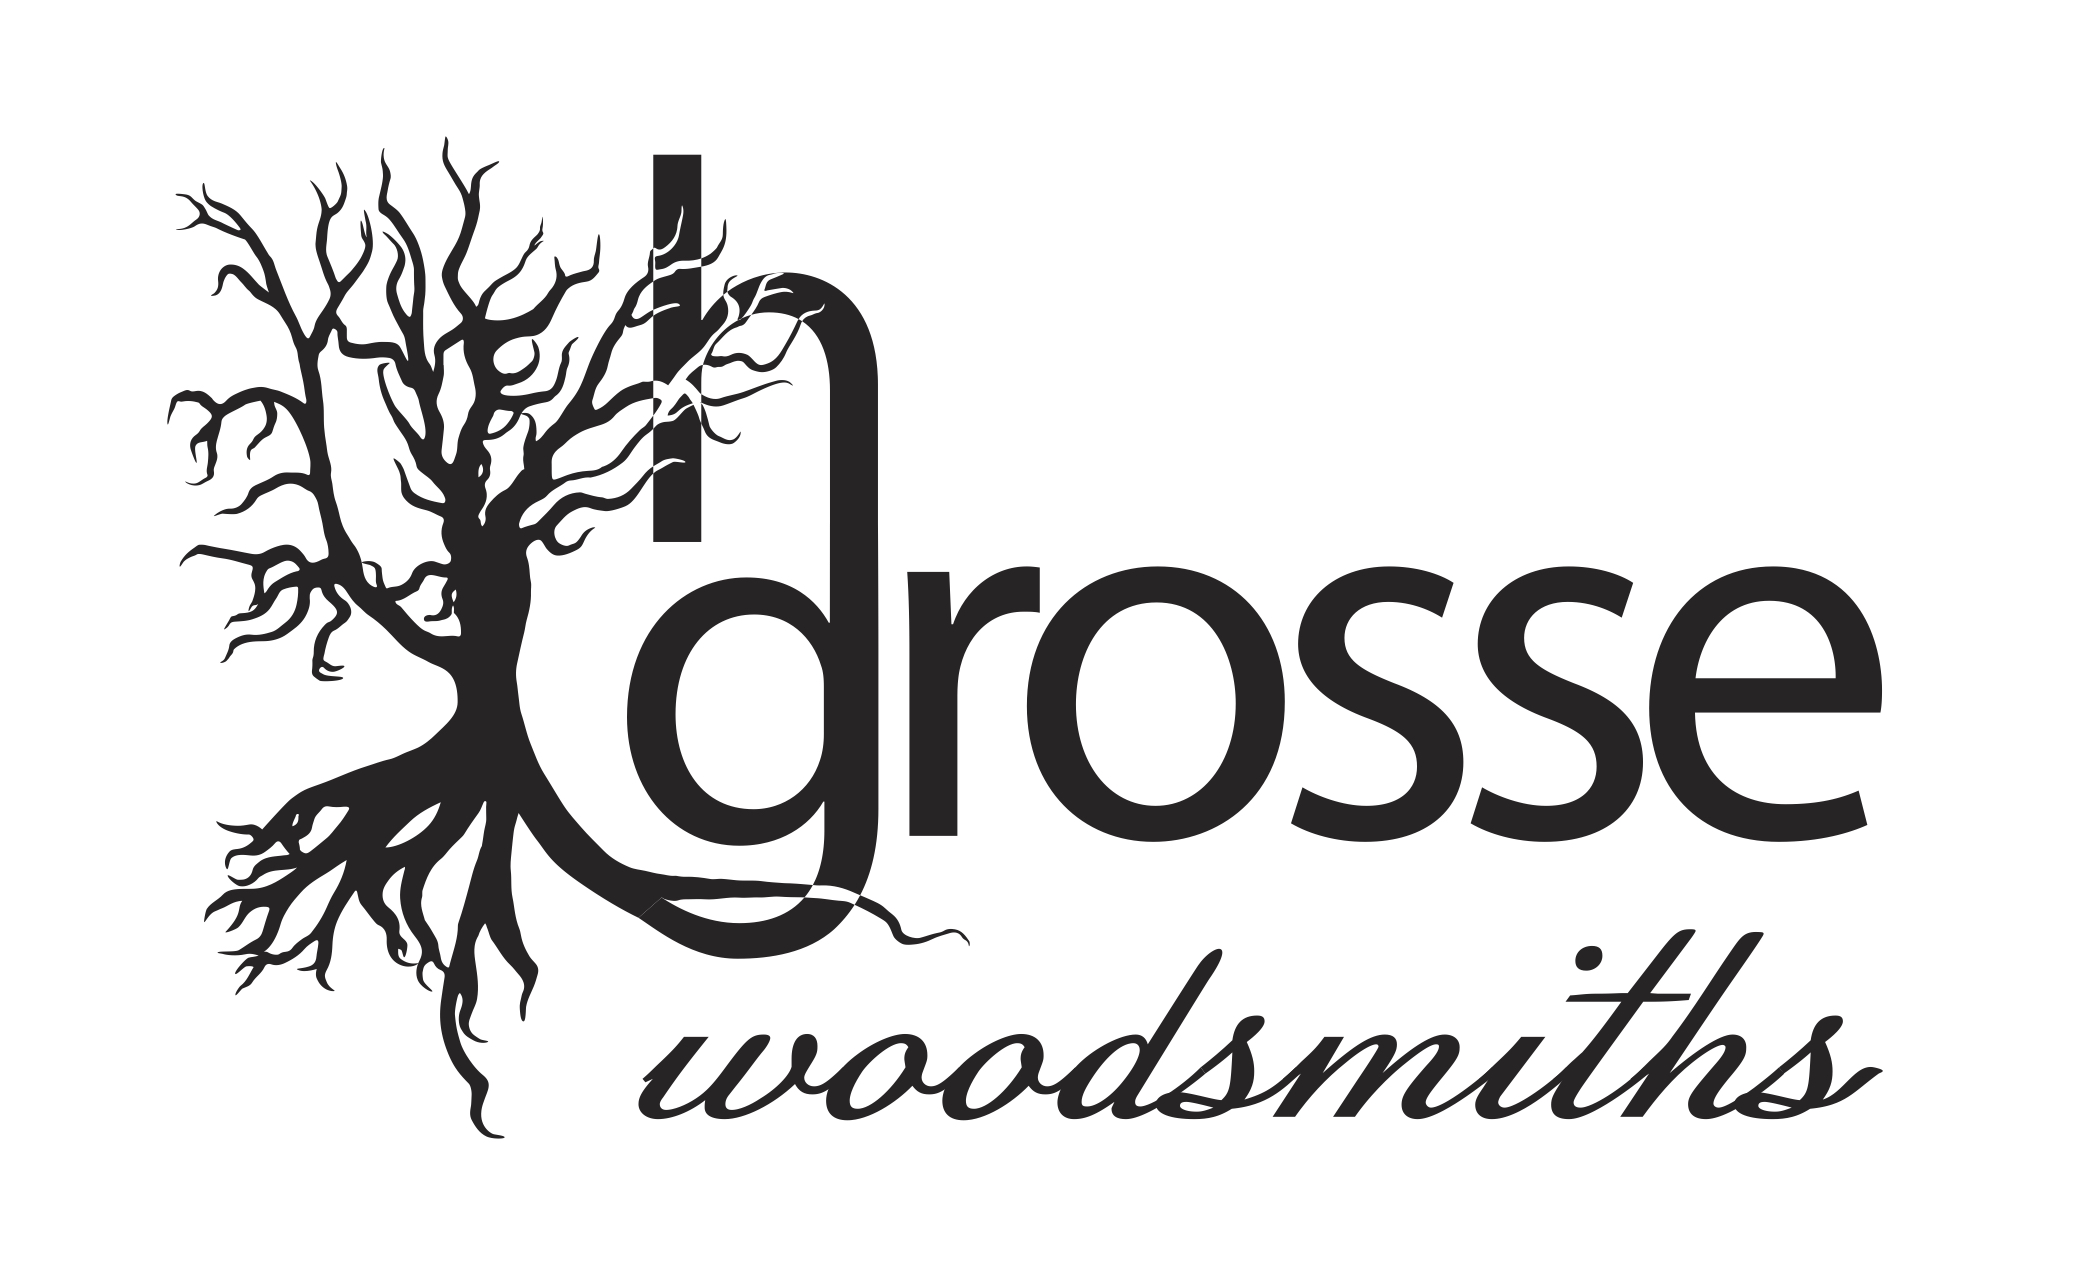 HGrosse_Woodsmiths.jpg